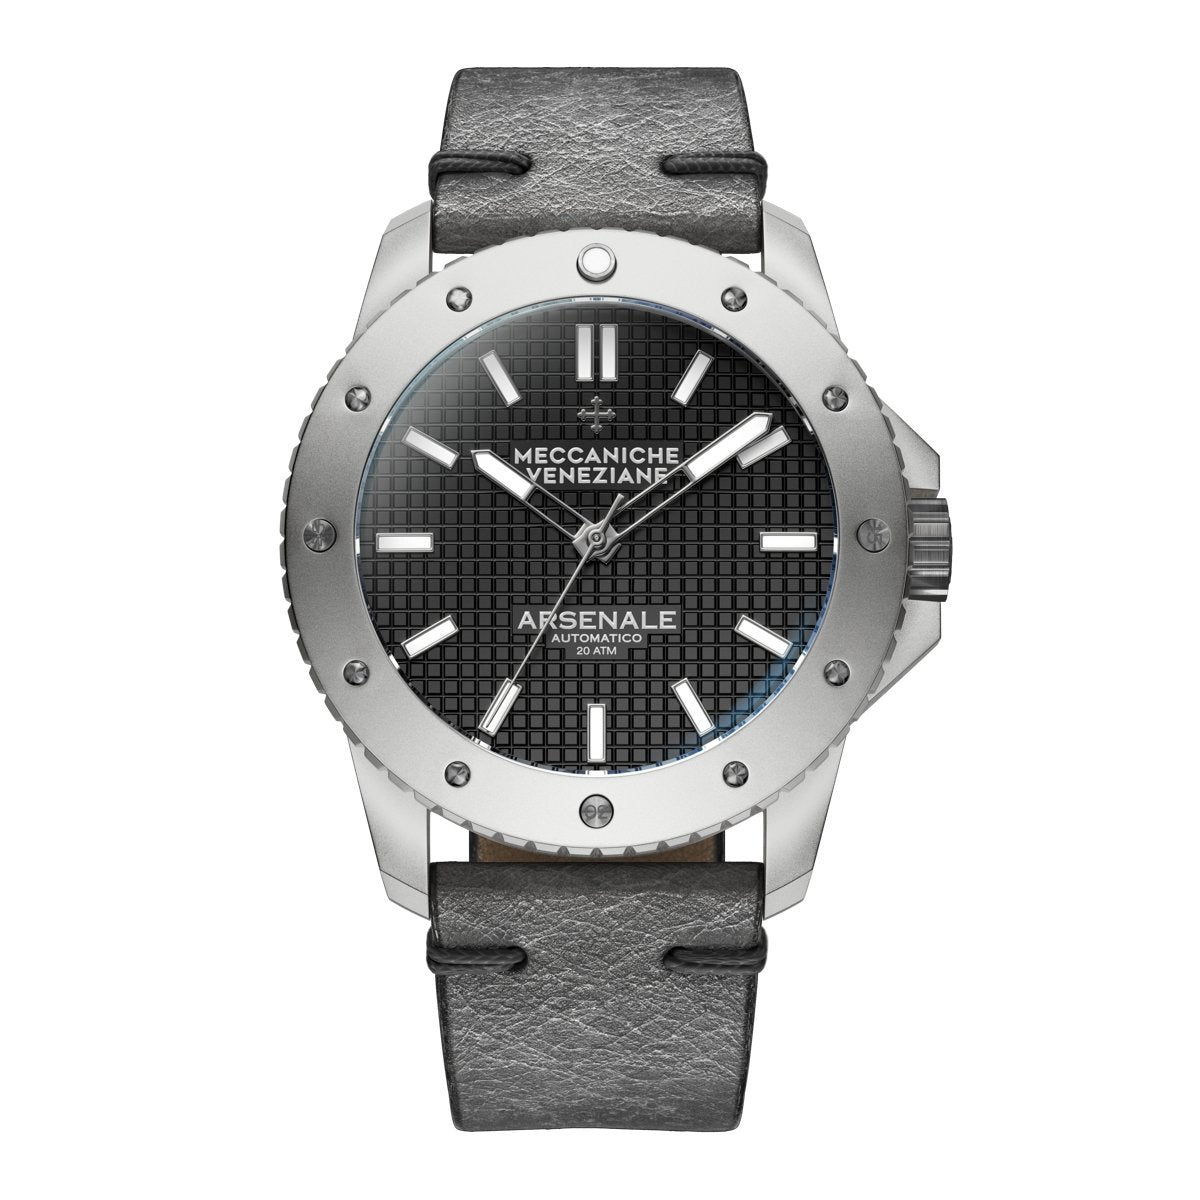 Meccaniche Veneziane Arsenale 4.0 Diver Grey - Watches & Crystals